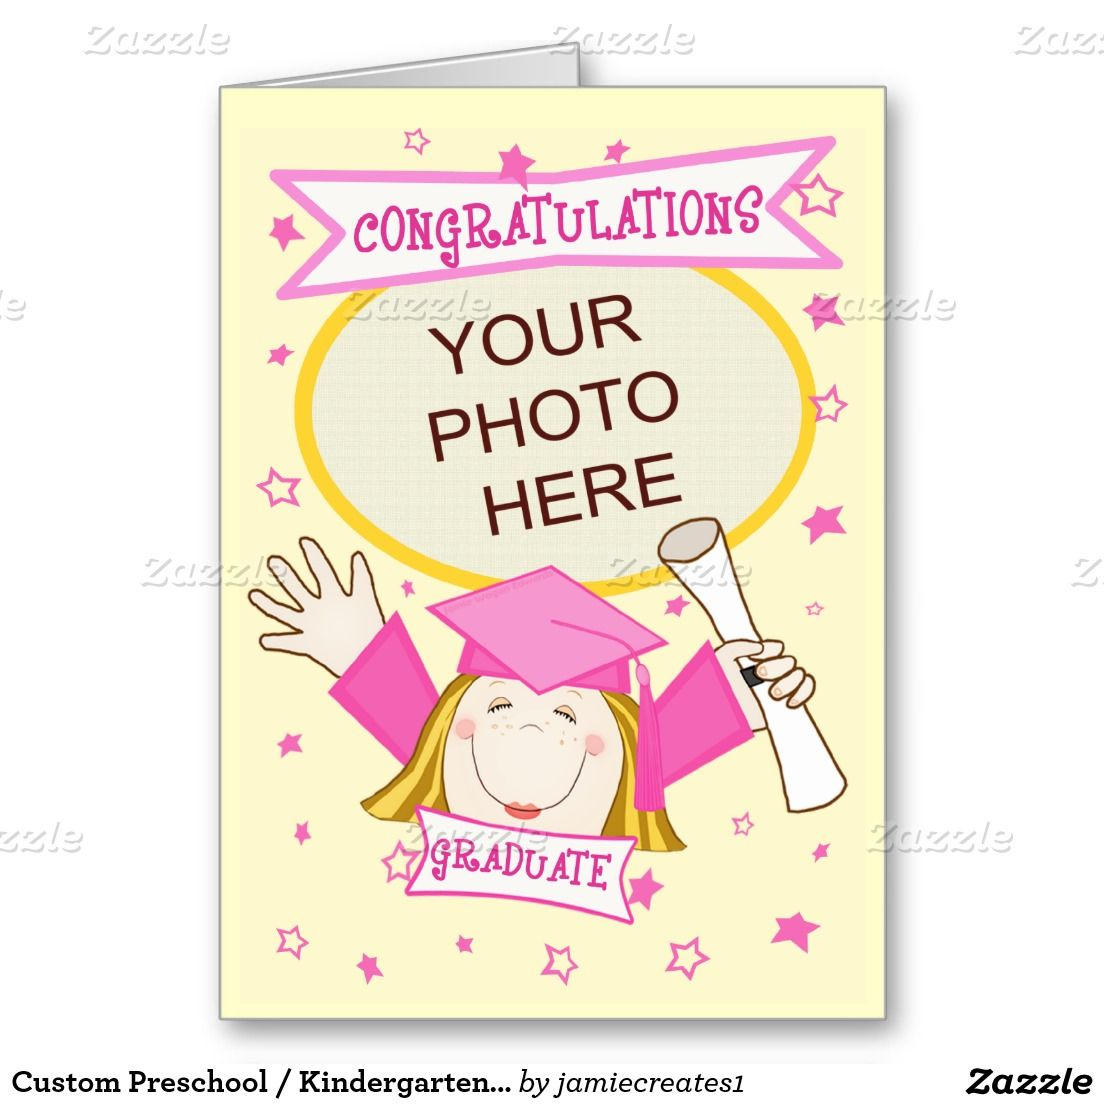 Custom Preschool Kindergarten Girl Graduation Card Gifts For All